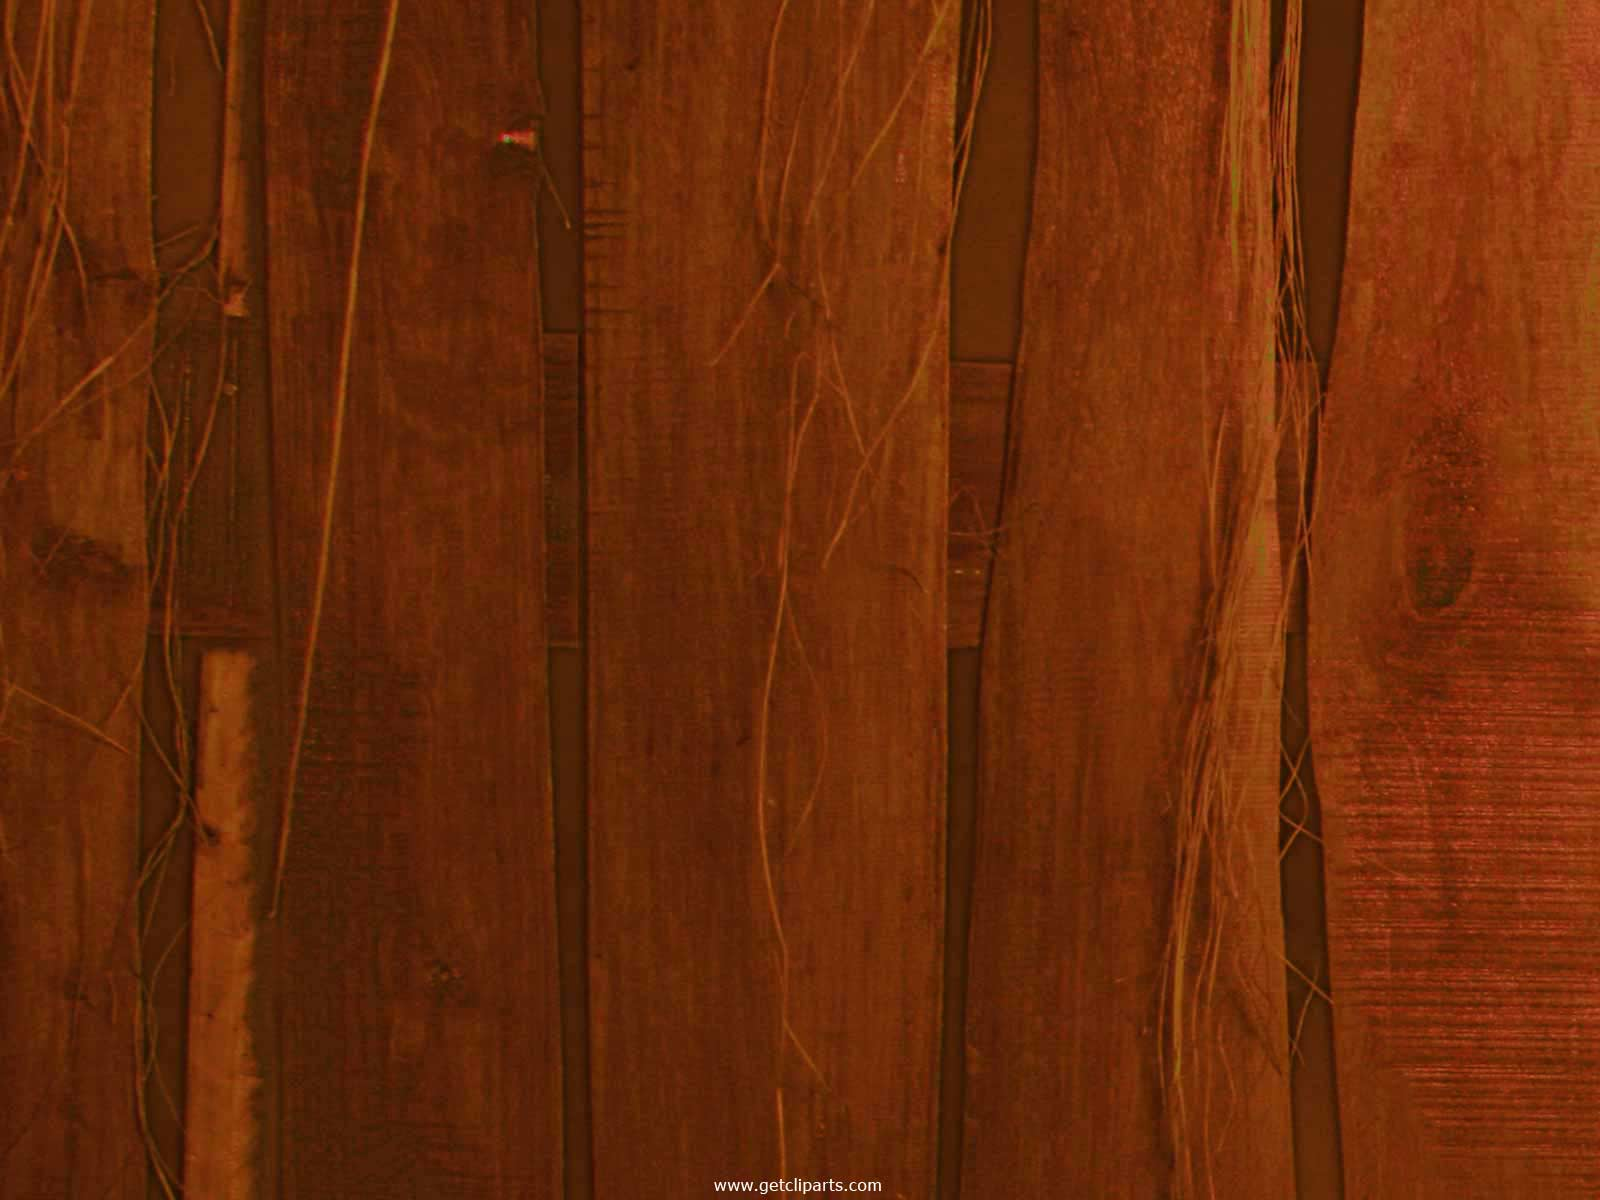 Wood Furniture Design Texture My Home Style 1600x1200